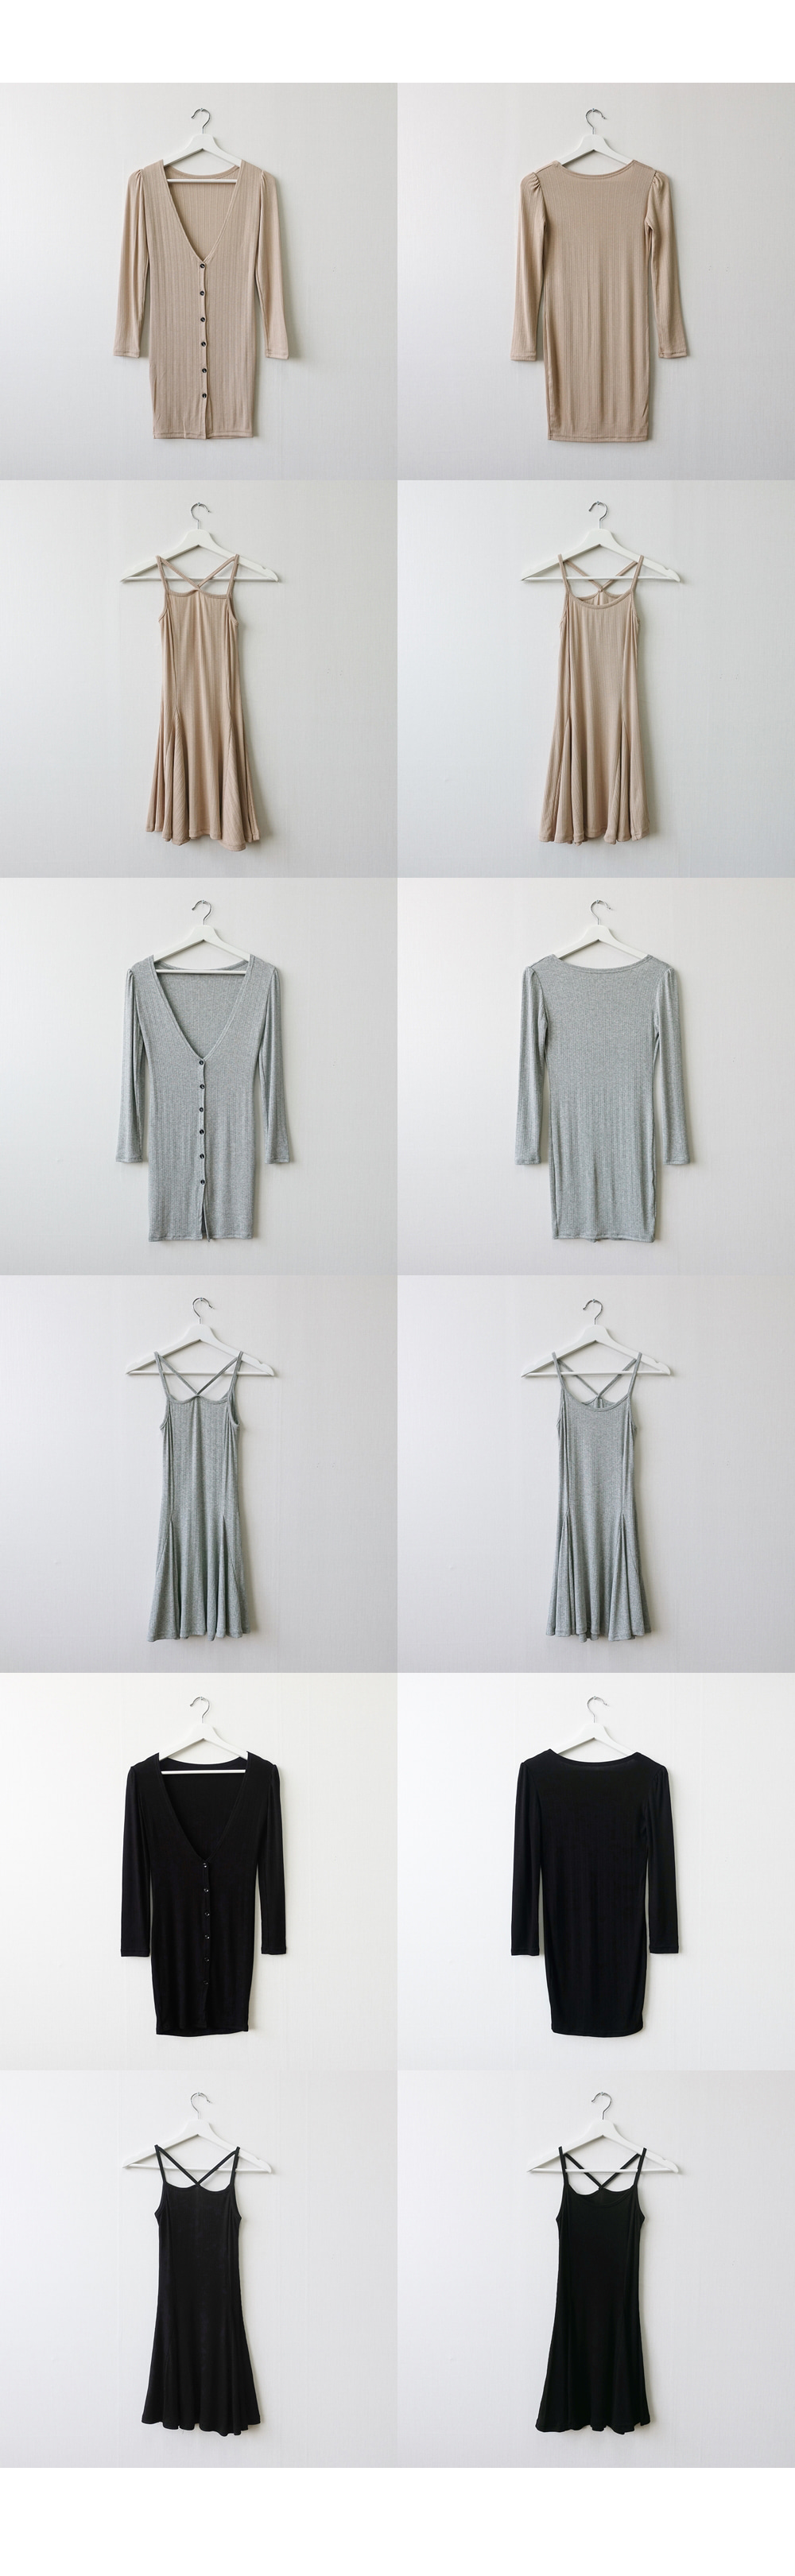 Goliard cardigan + x-nashi dress set